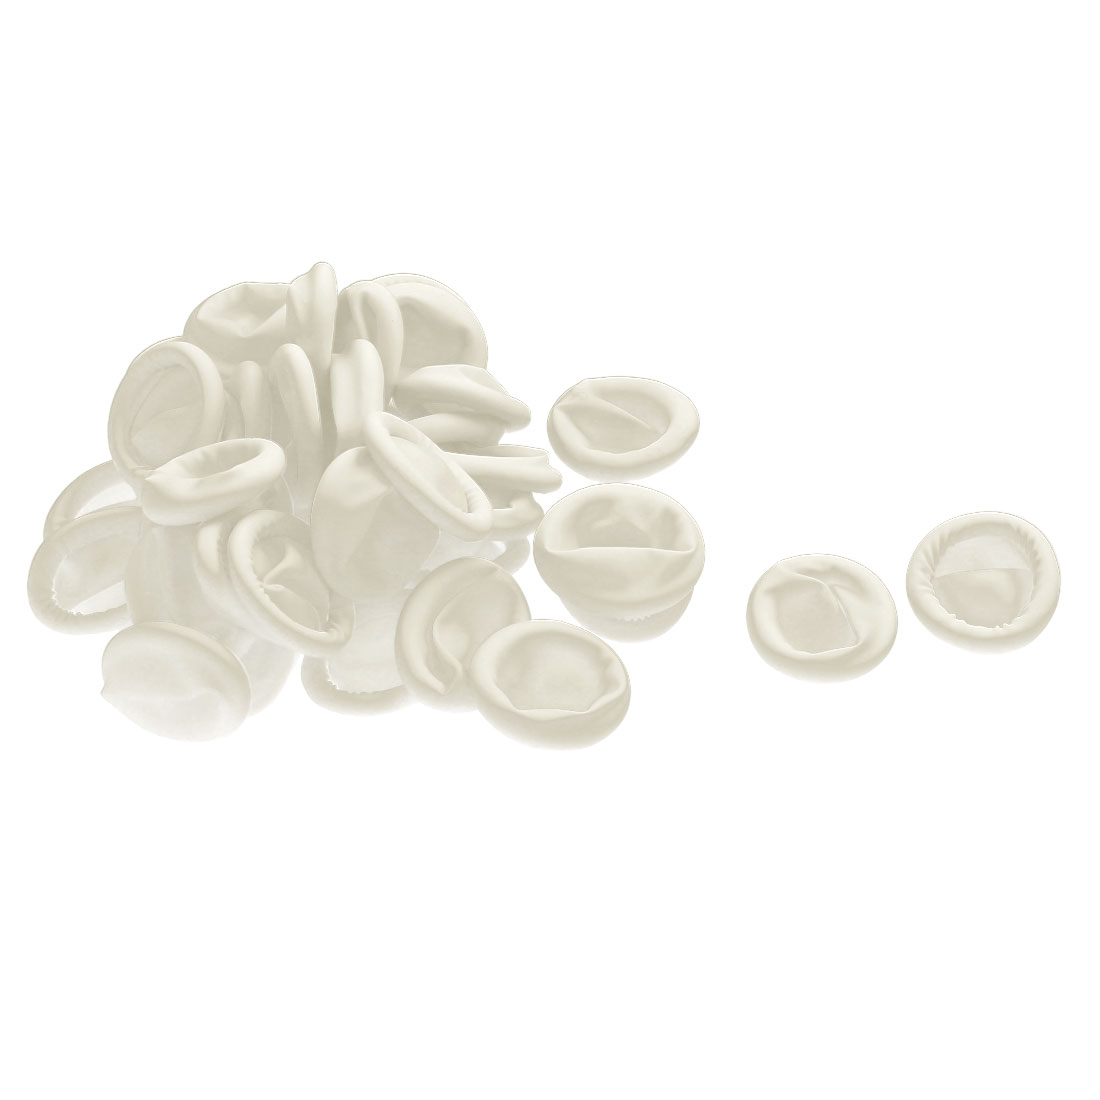 Latex Elastic Rolled Finger Tip Cot Cover Protector Shield Off White 40pcs